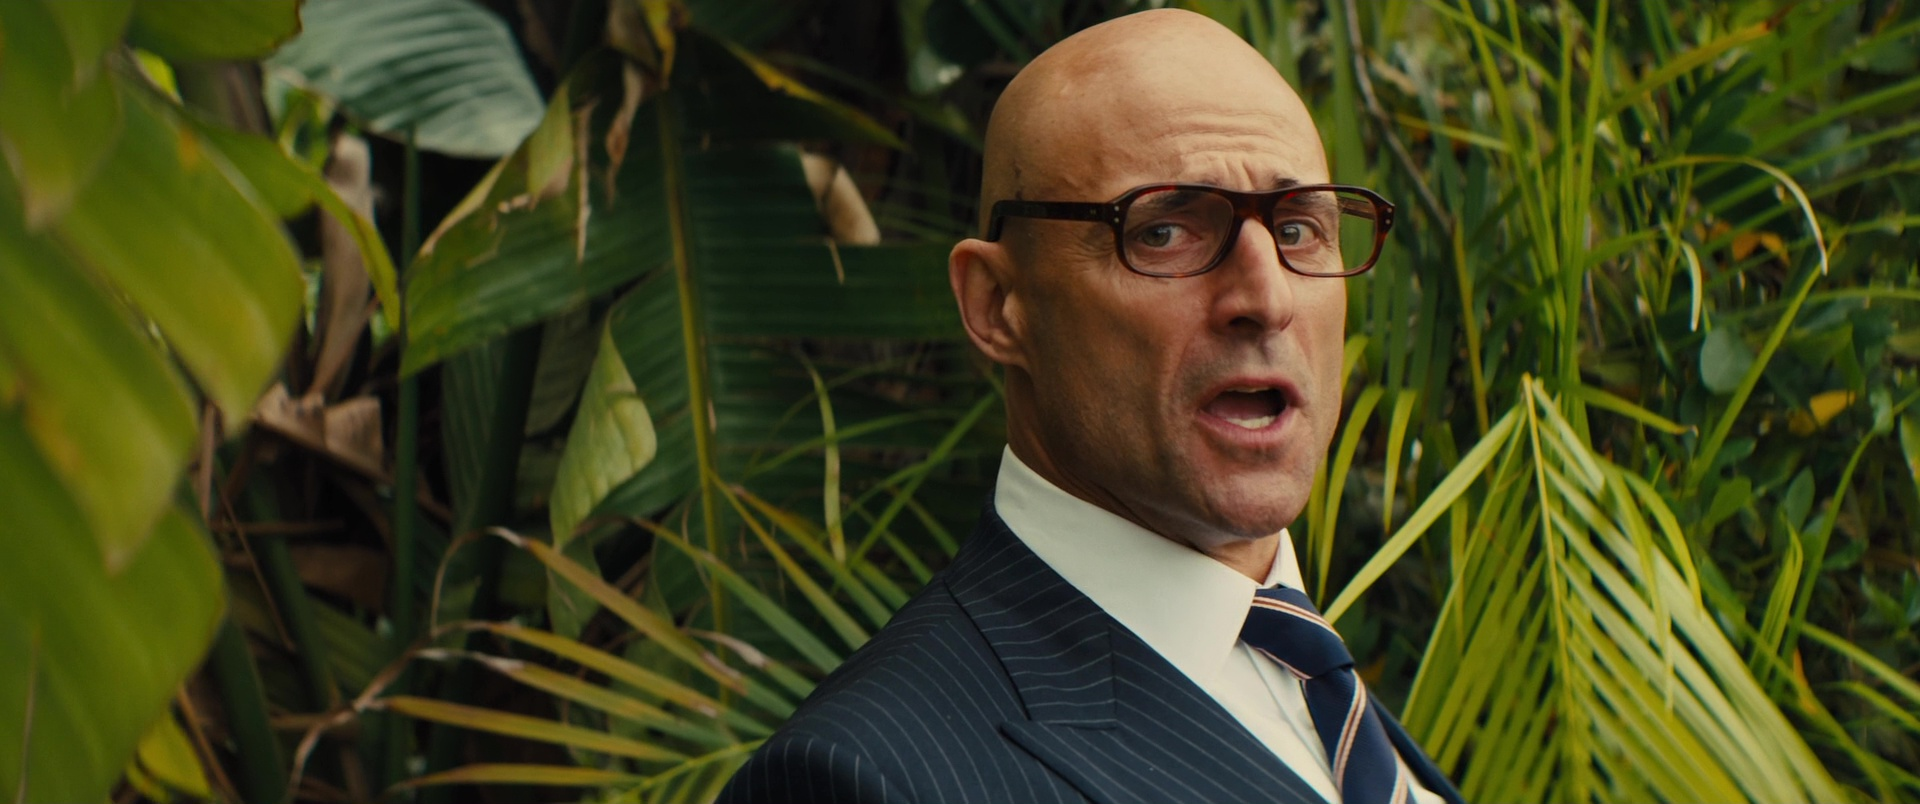 3012a7b46c0 Cutler And Gross Square-Frame Tortoiseshell Acetate Optical Glasses Worn by  Mark Strong in Kingsman